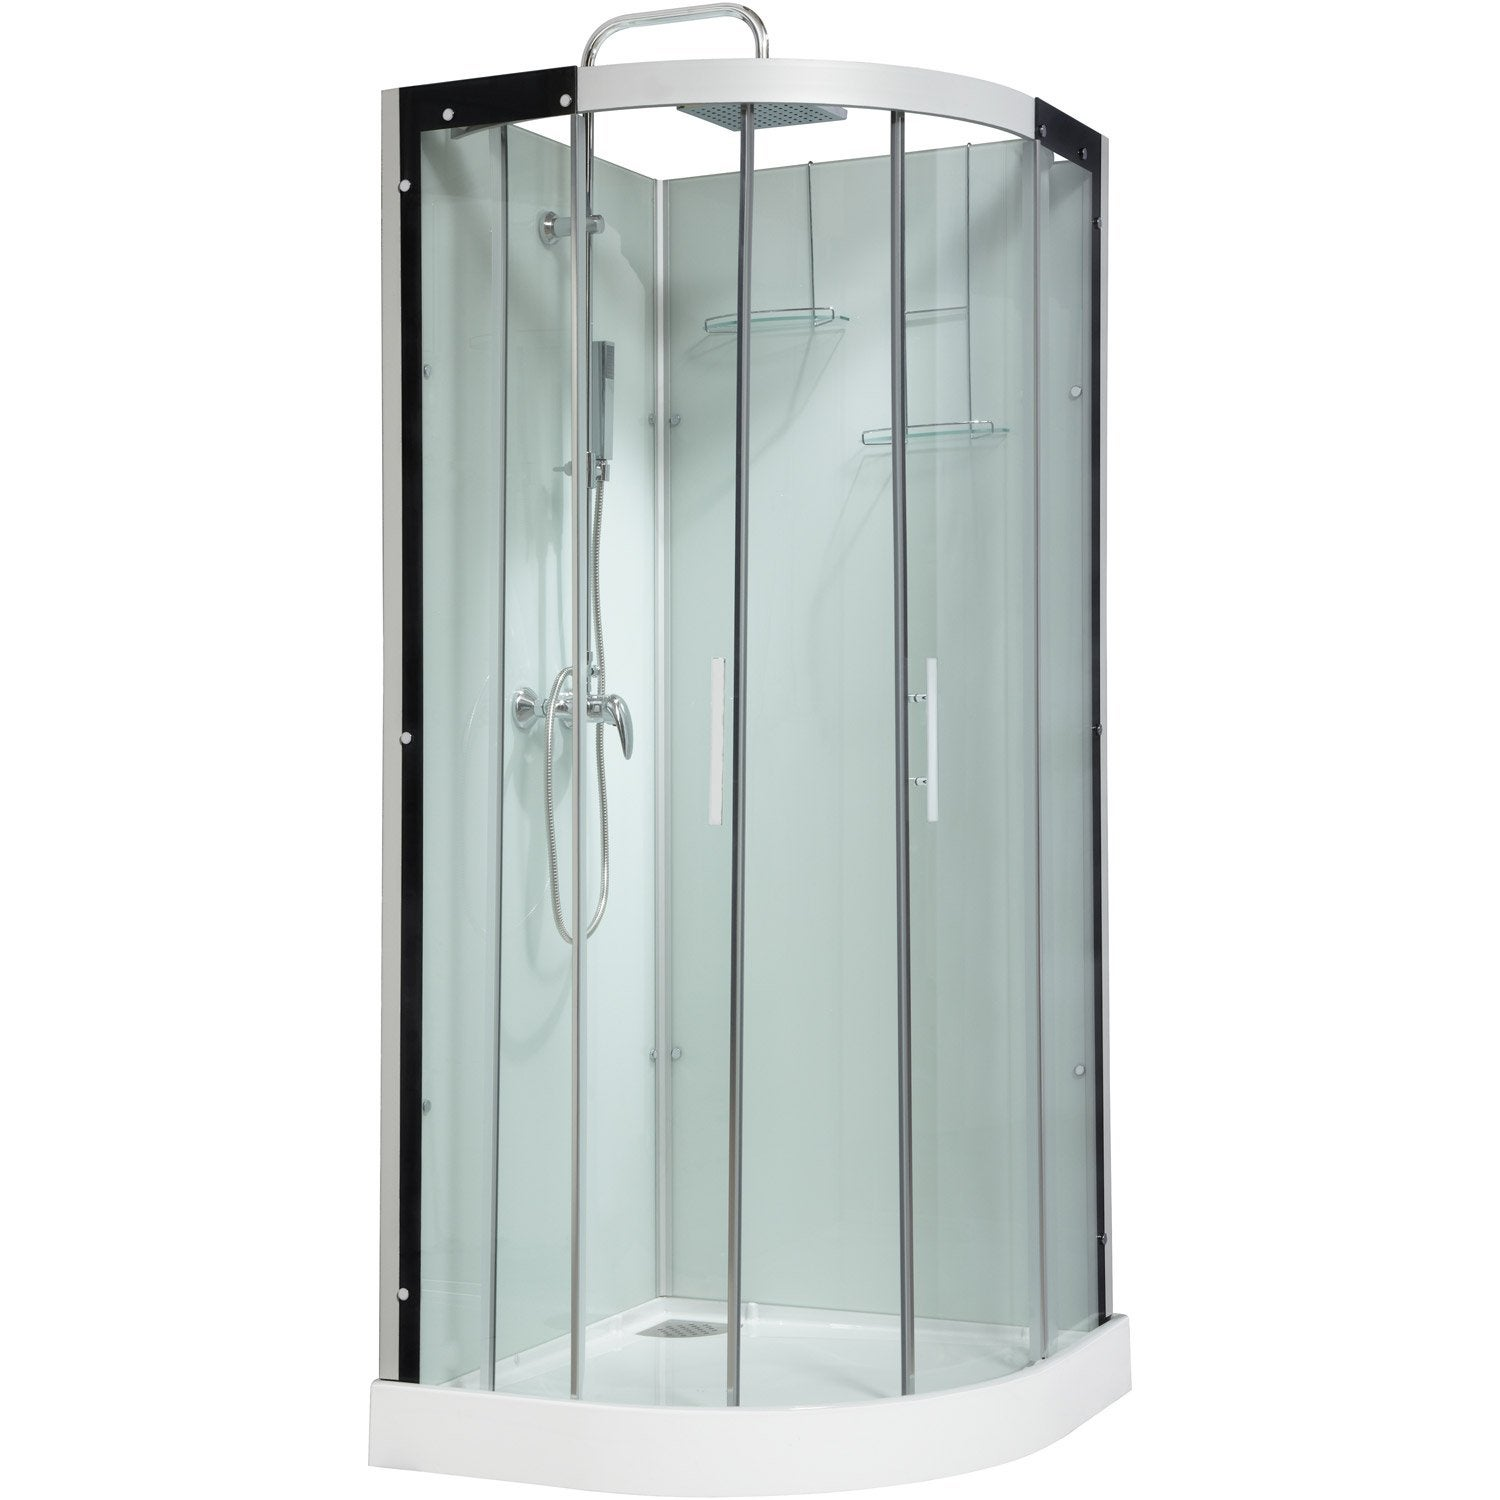 cabine de douche 1 4 de cercle 90x90 cm thalaglass 2 mitigeur leroy merlin. Black Bedroom Furniture Sets. Home Design Ideas